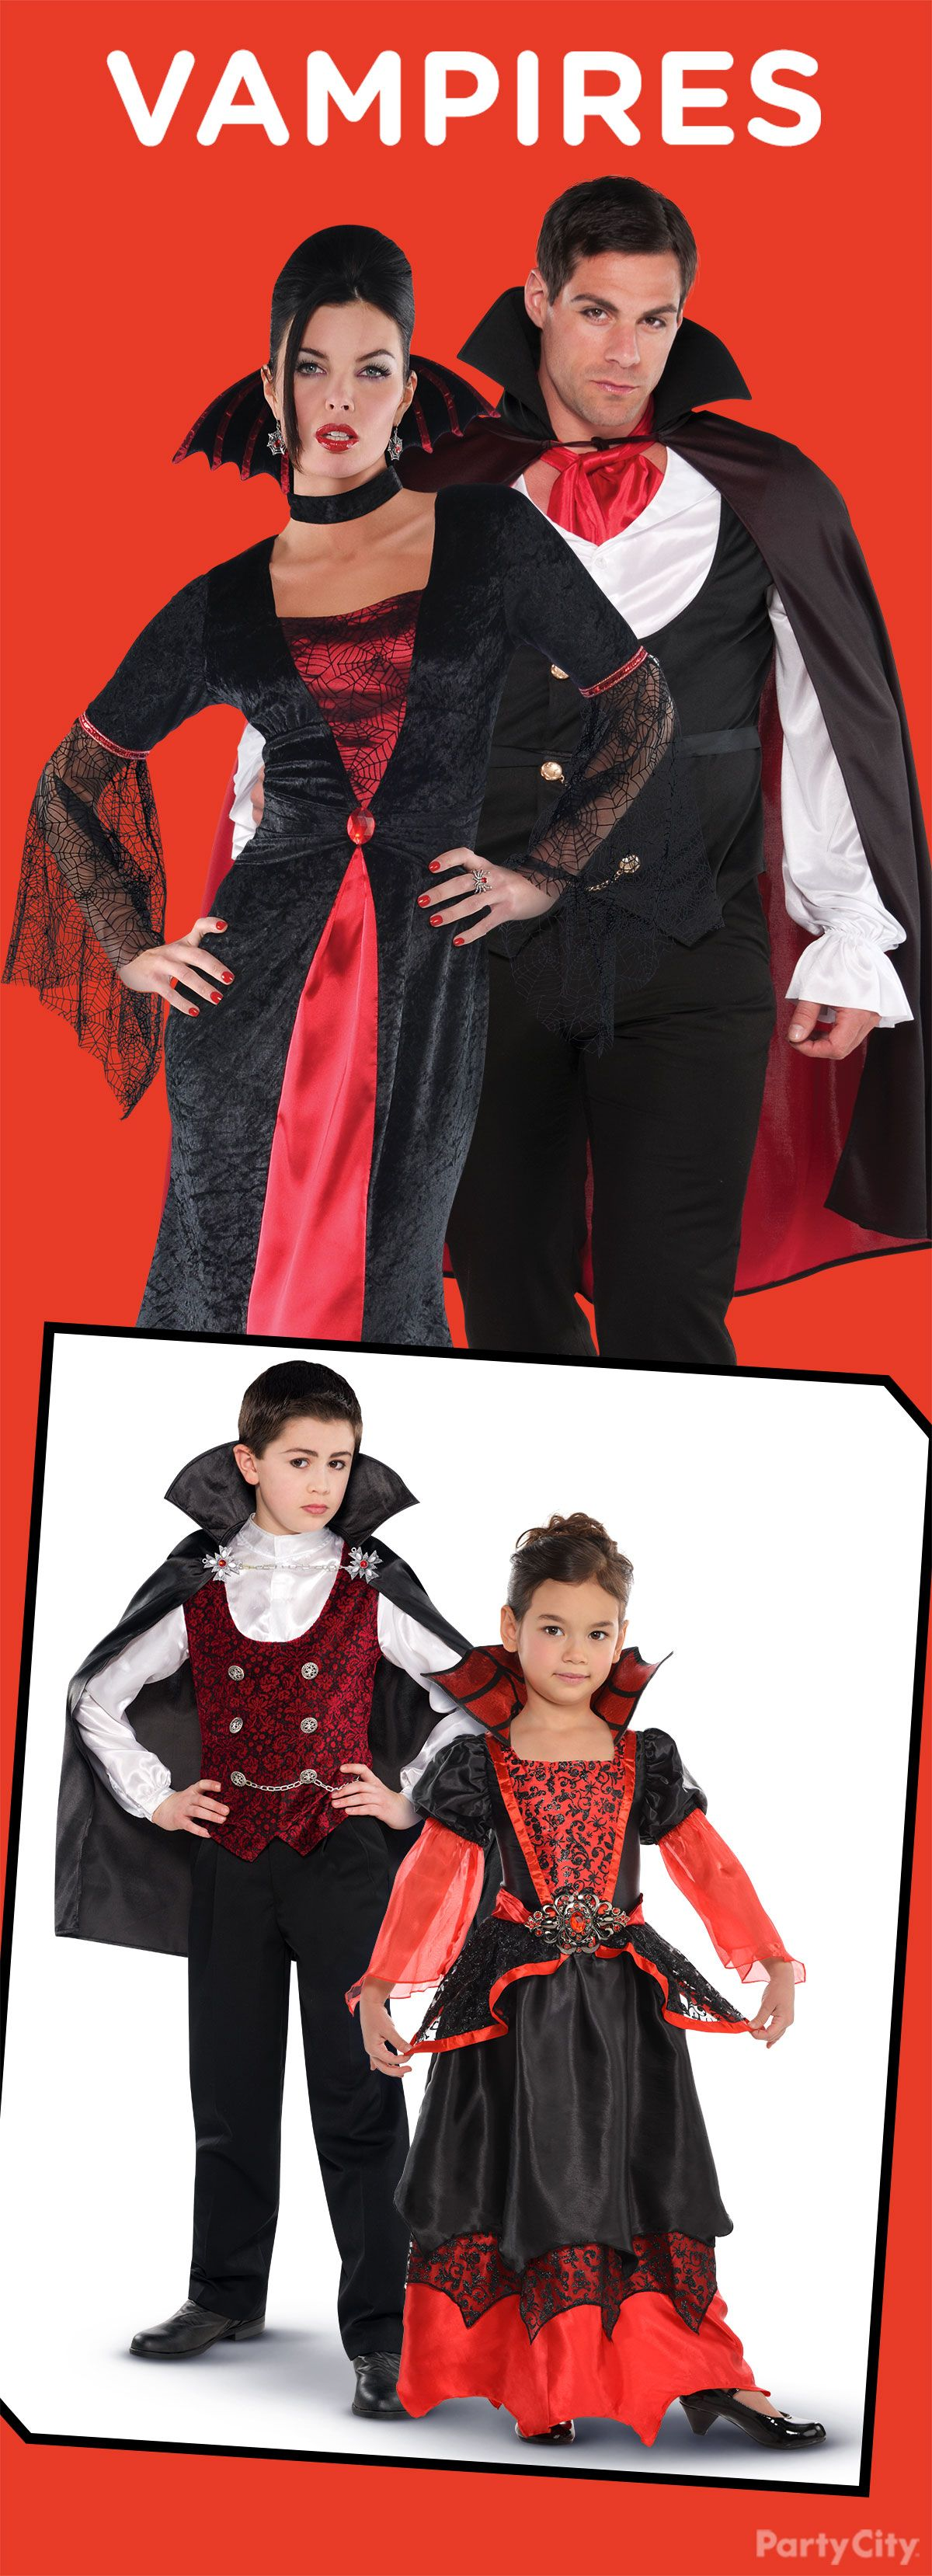 ReVAMP your Halloween night with these spooktacular